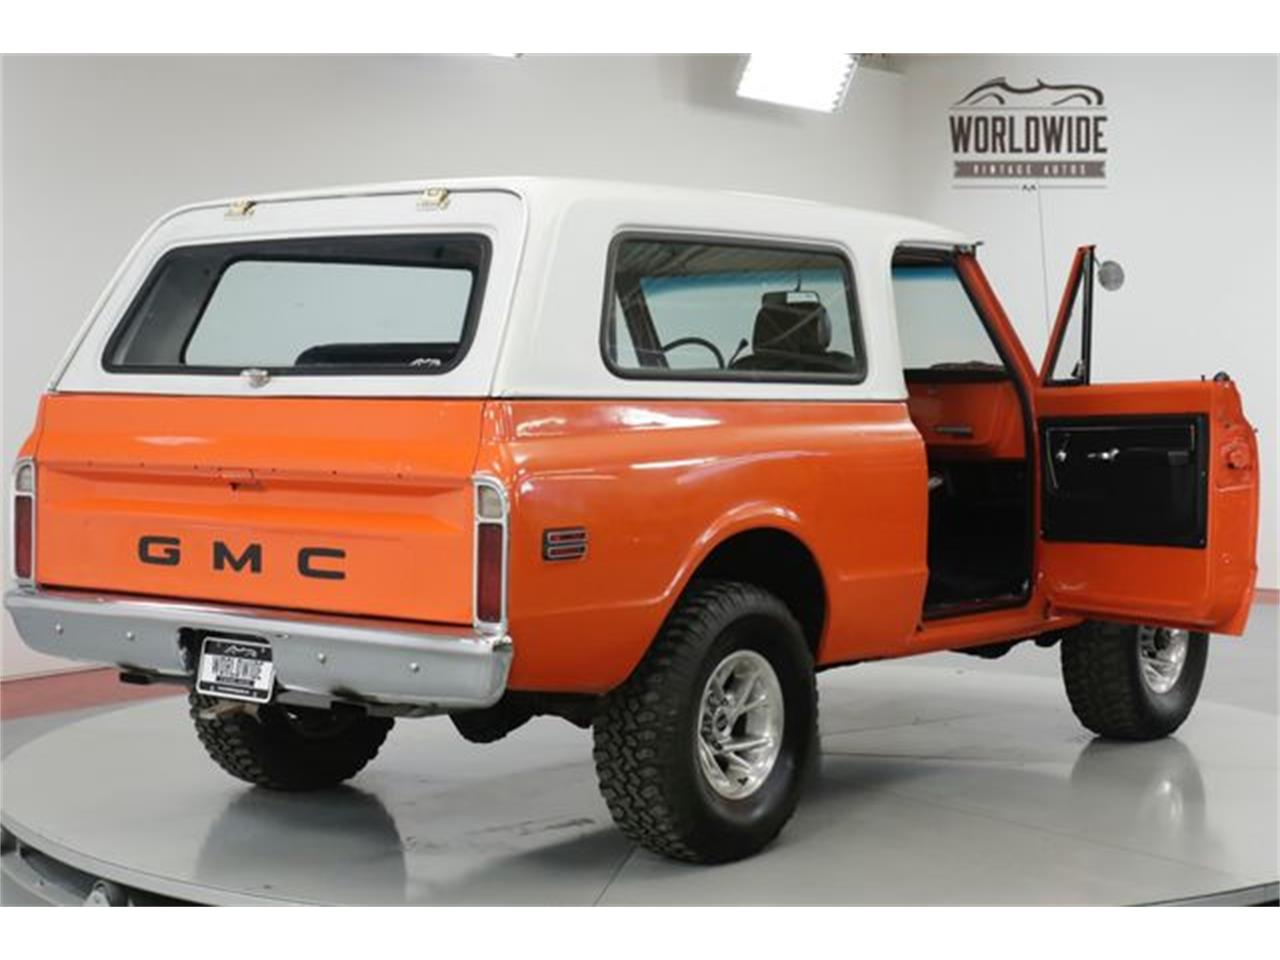 Large Picture of 1970 GMC Jimmy located in Denver  Colorado - $27,900.00 Offered by Worldwide Vintage Autos - PH20